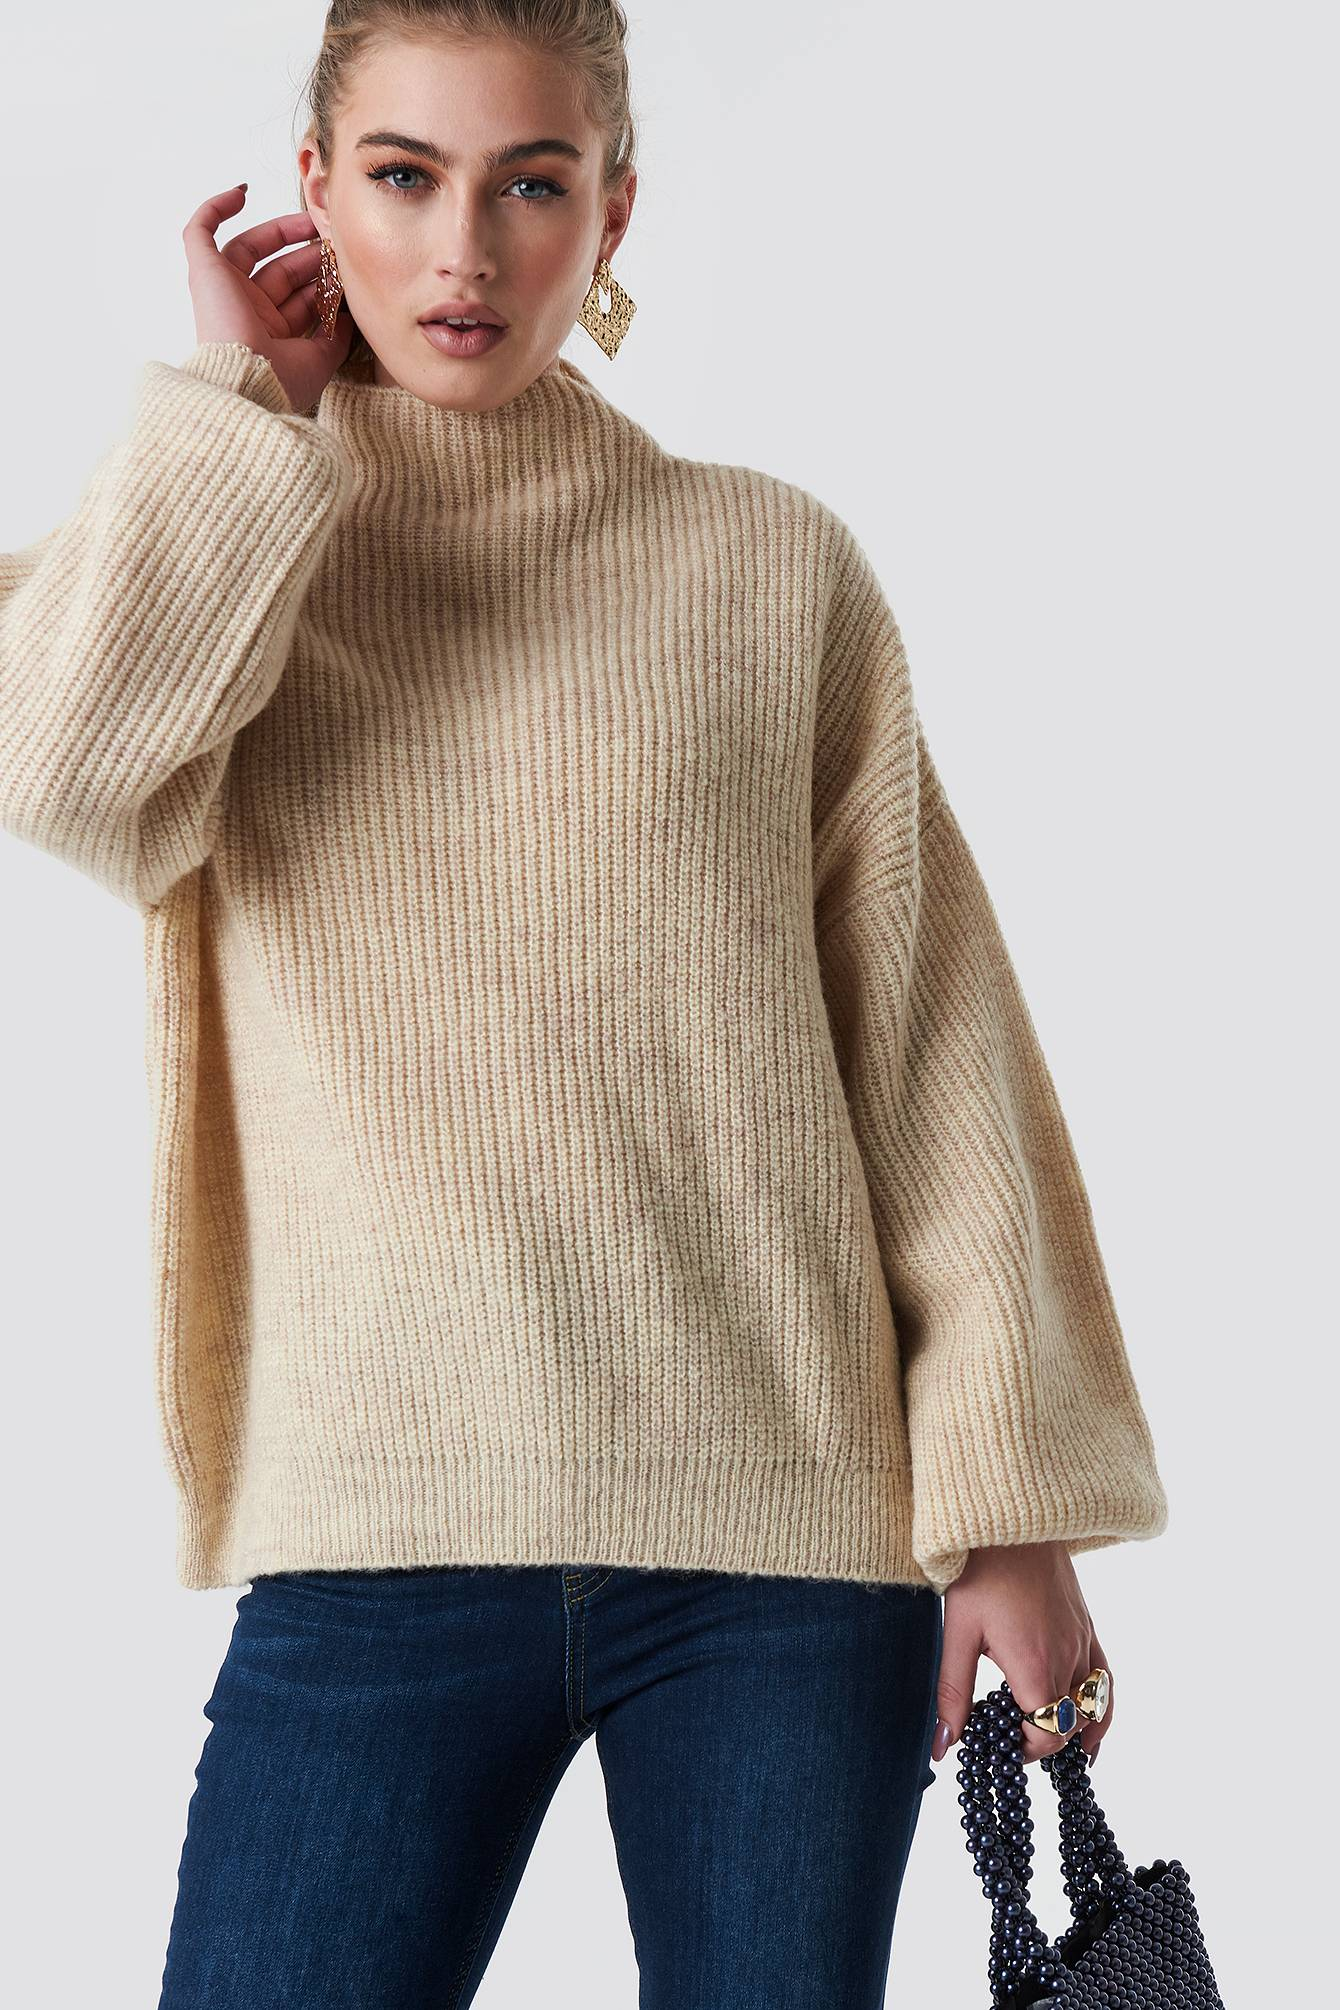 Statement By NA-KD Influencers Jennifer Andersson Knitted Sweater - Beige